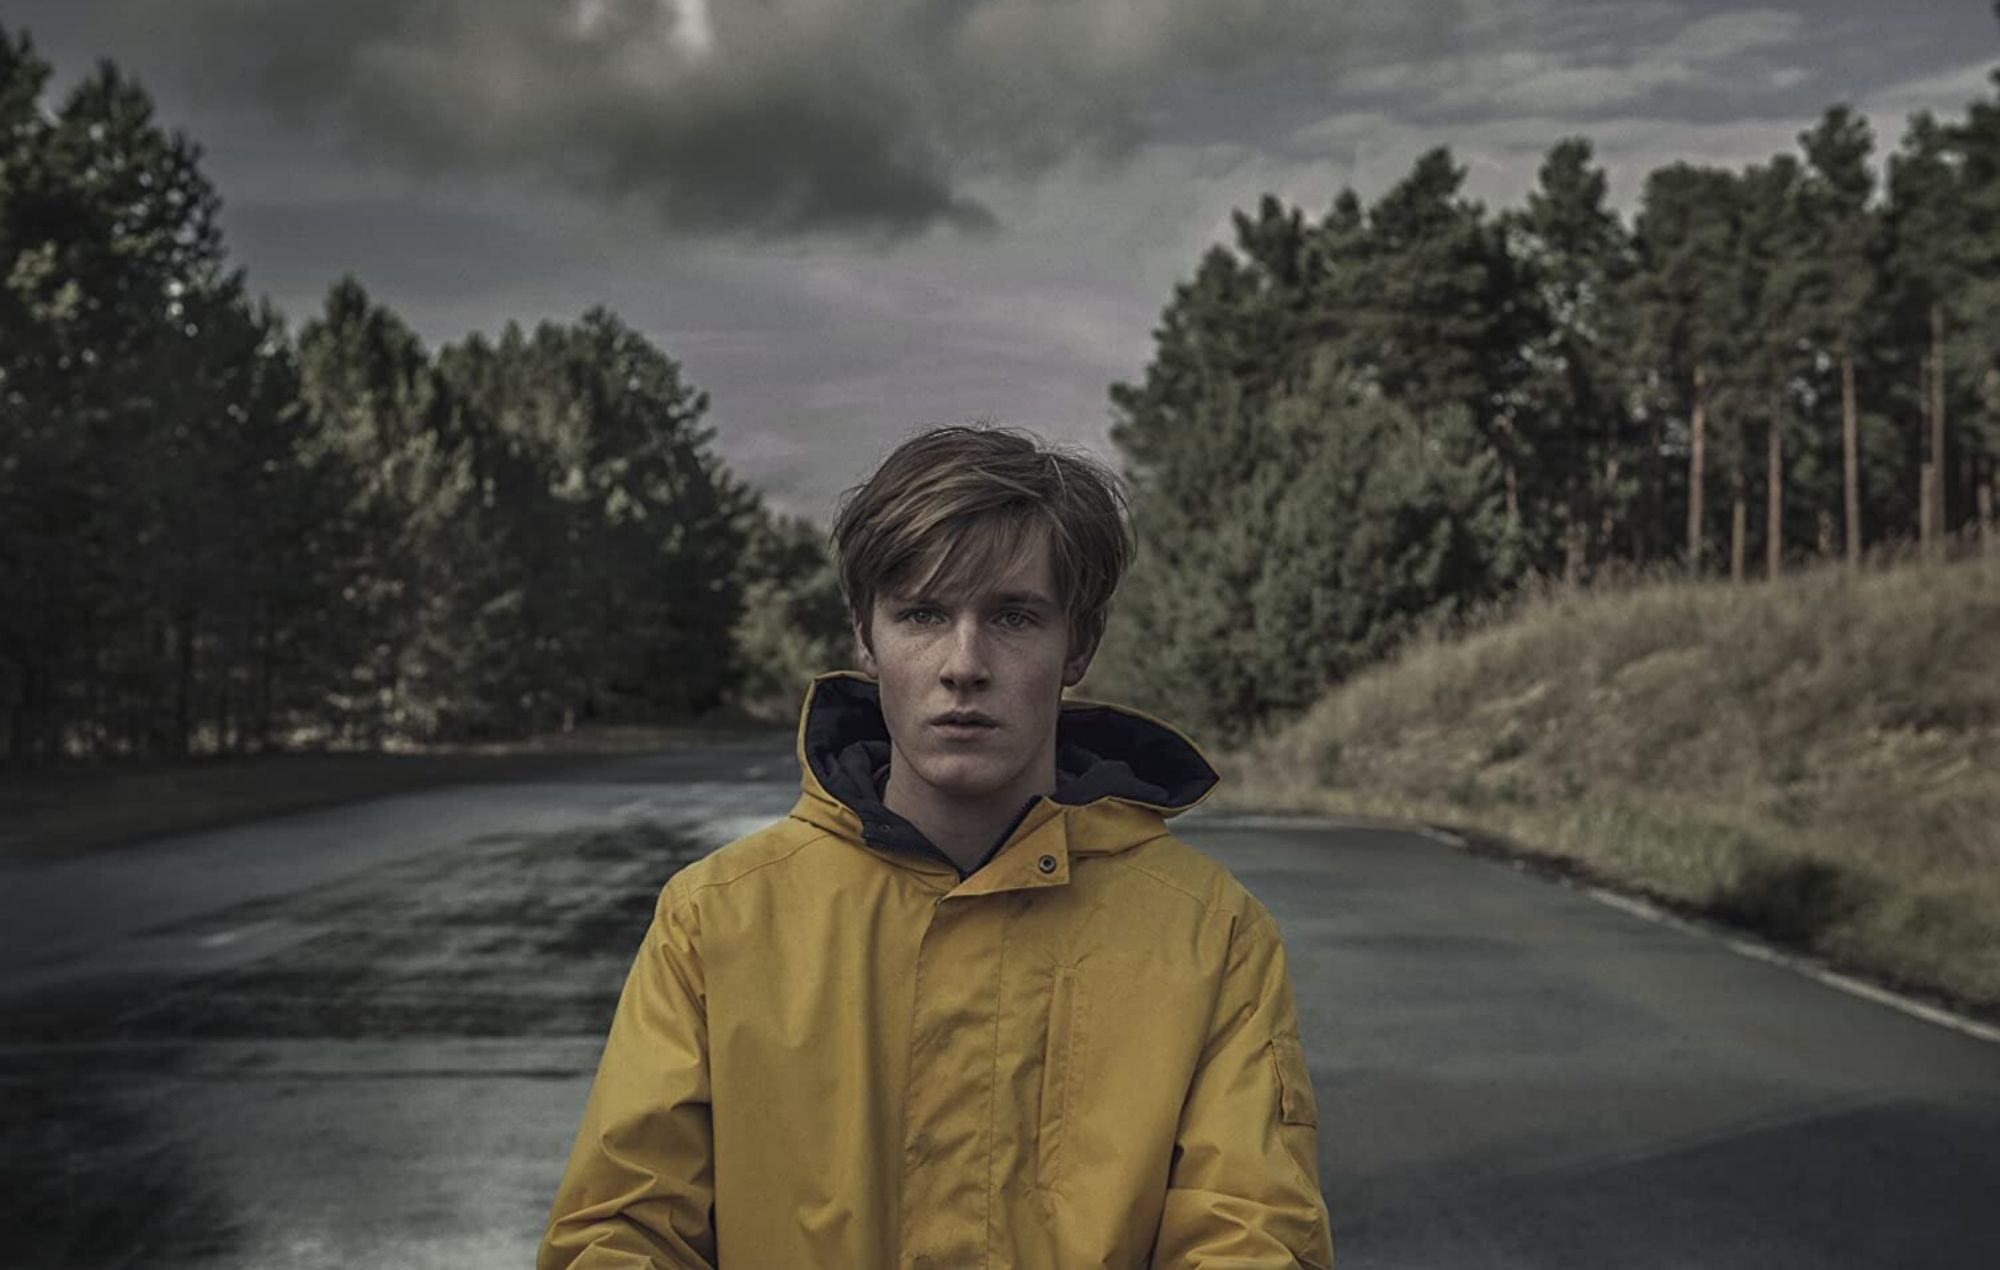 Netflix drama 'Dark' confirmed for season 3 with new trailer ...